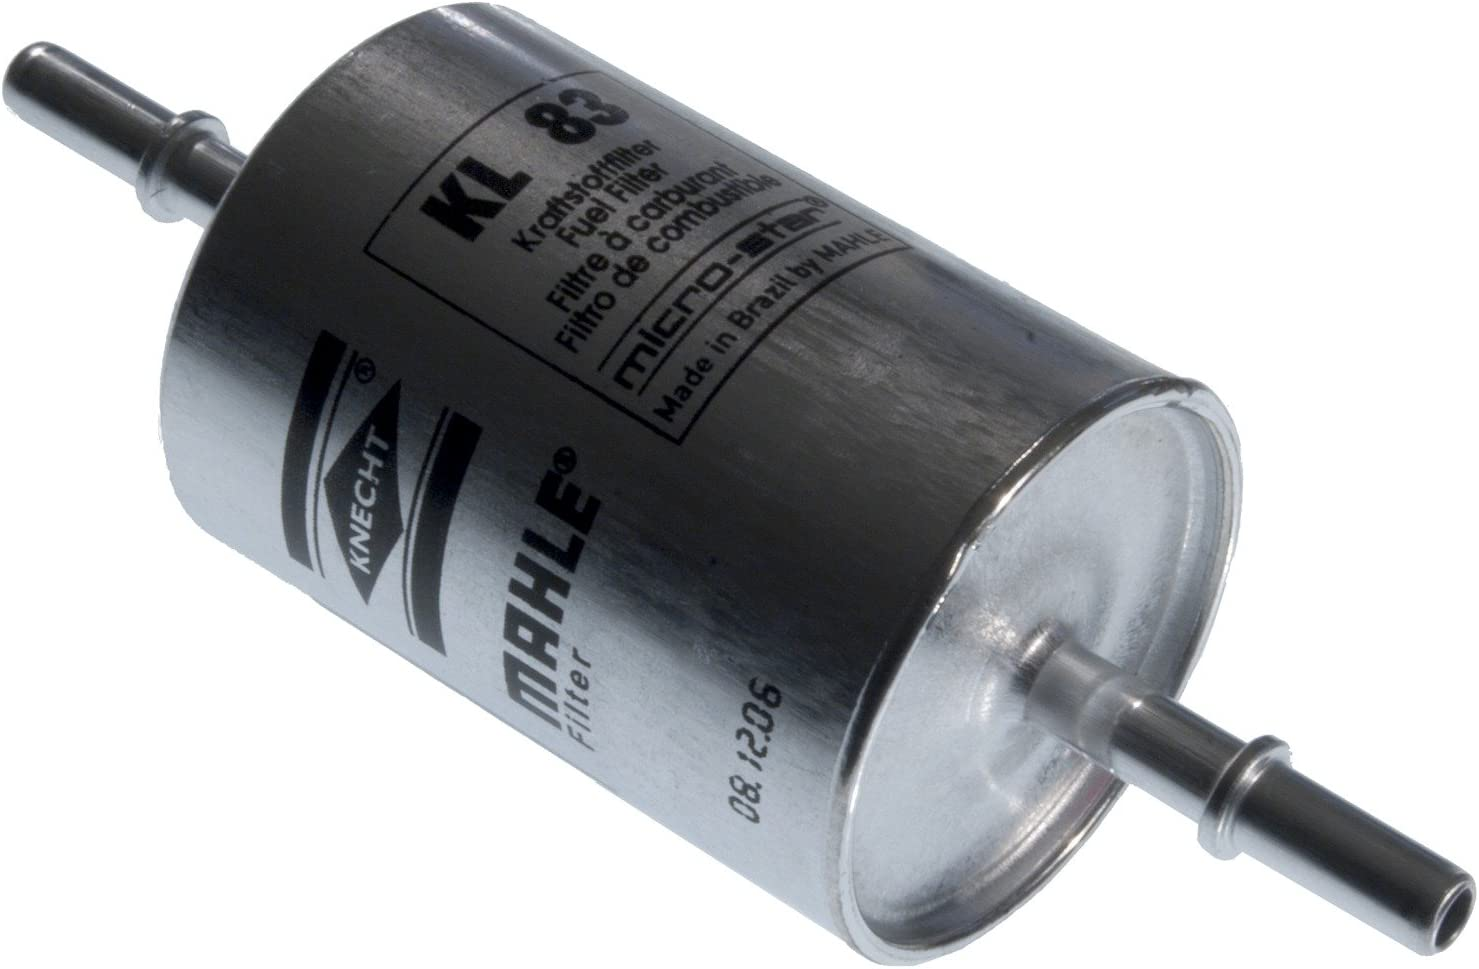 Knecht KL 83 Fuel Filter